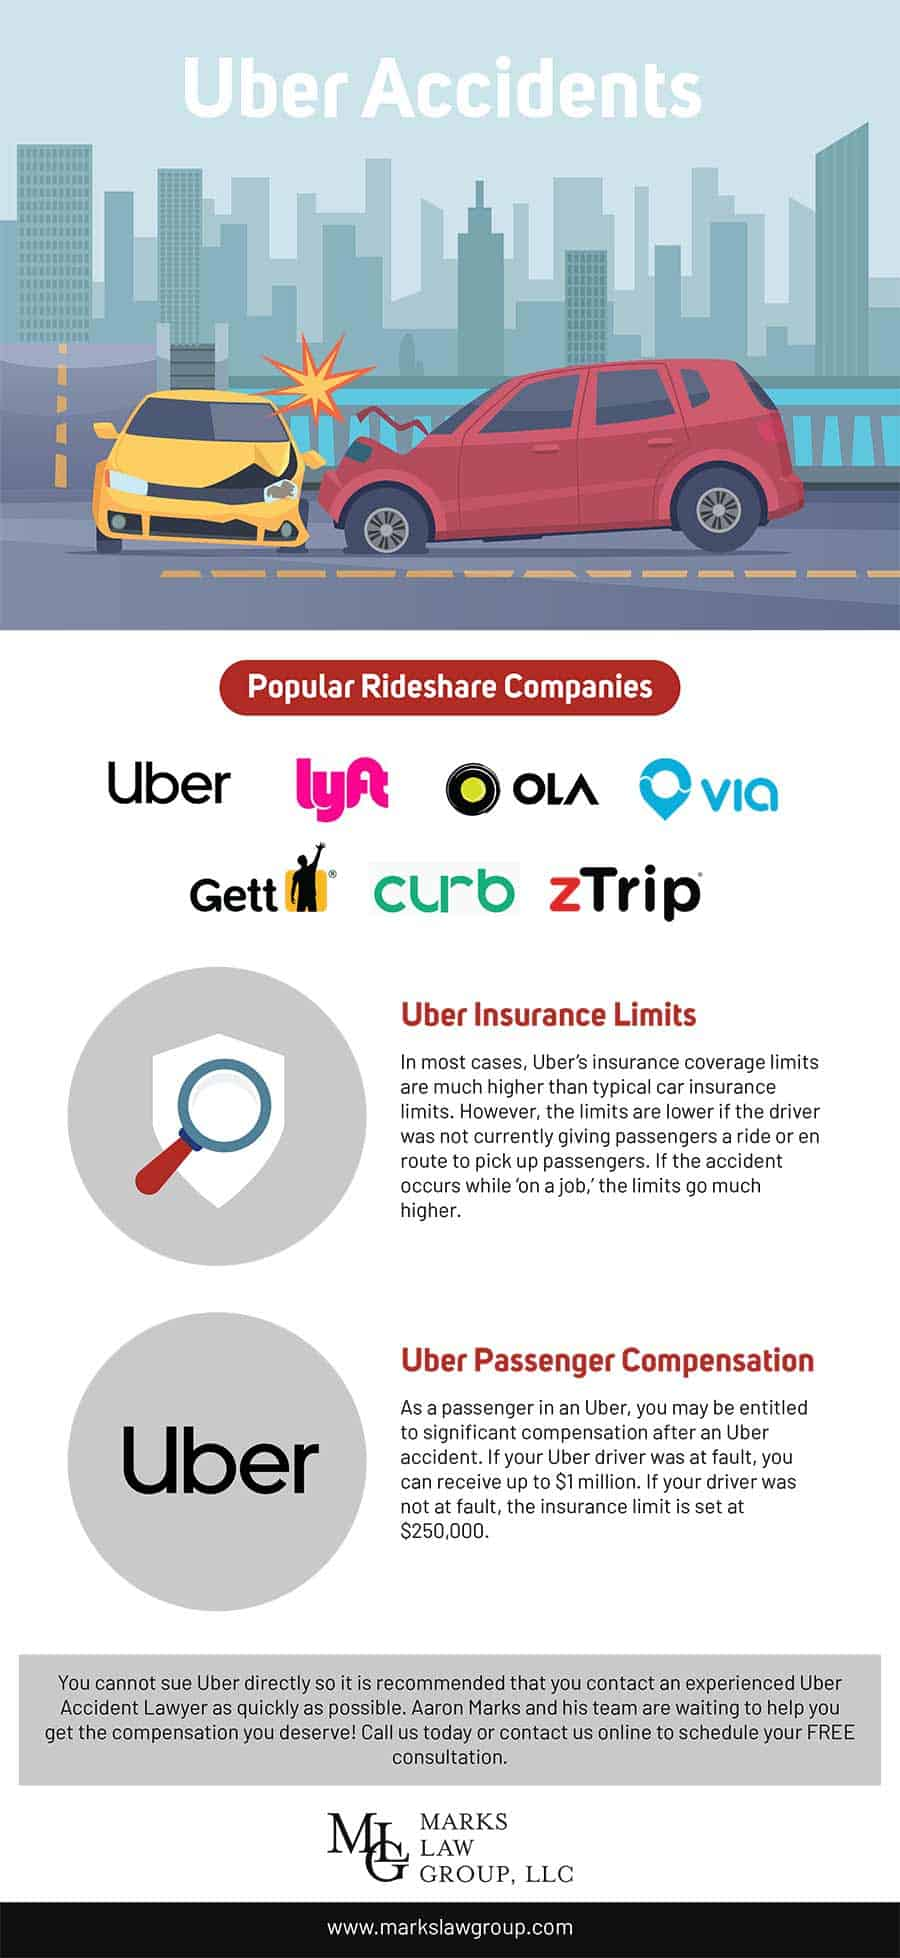 Uber Accidents - infographic